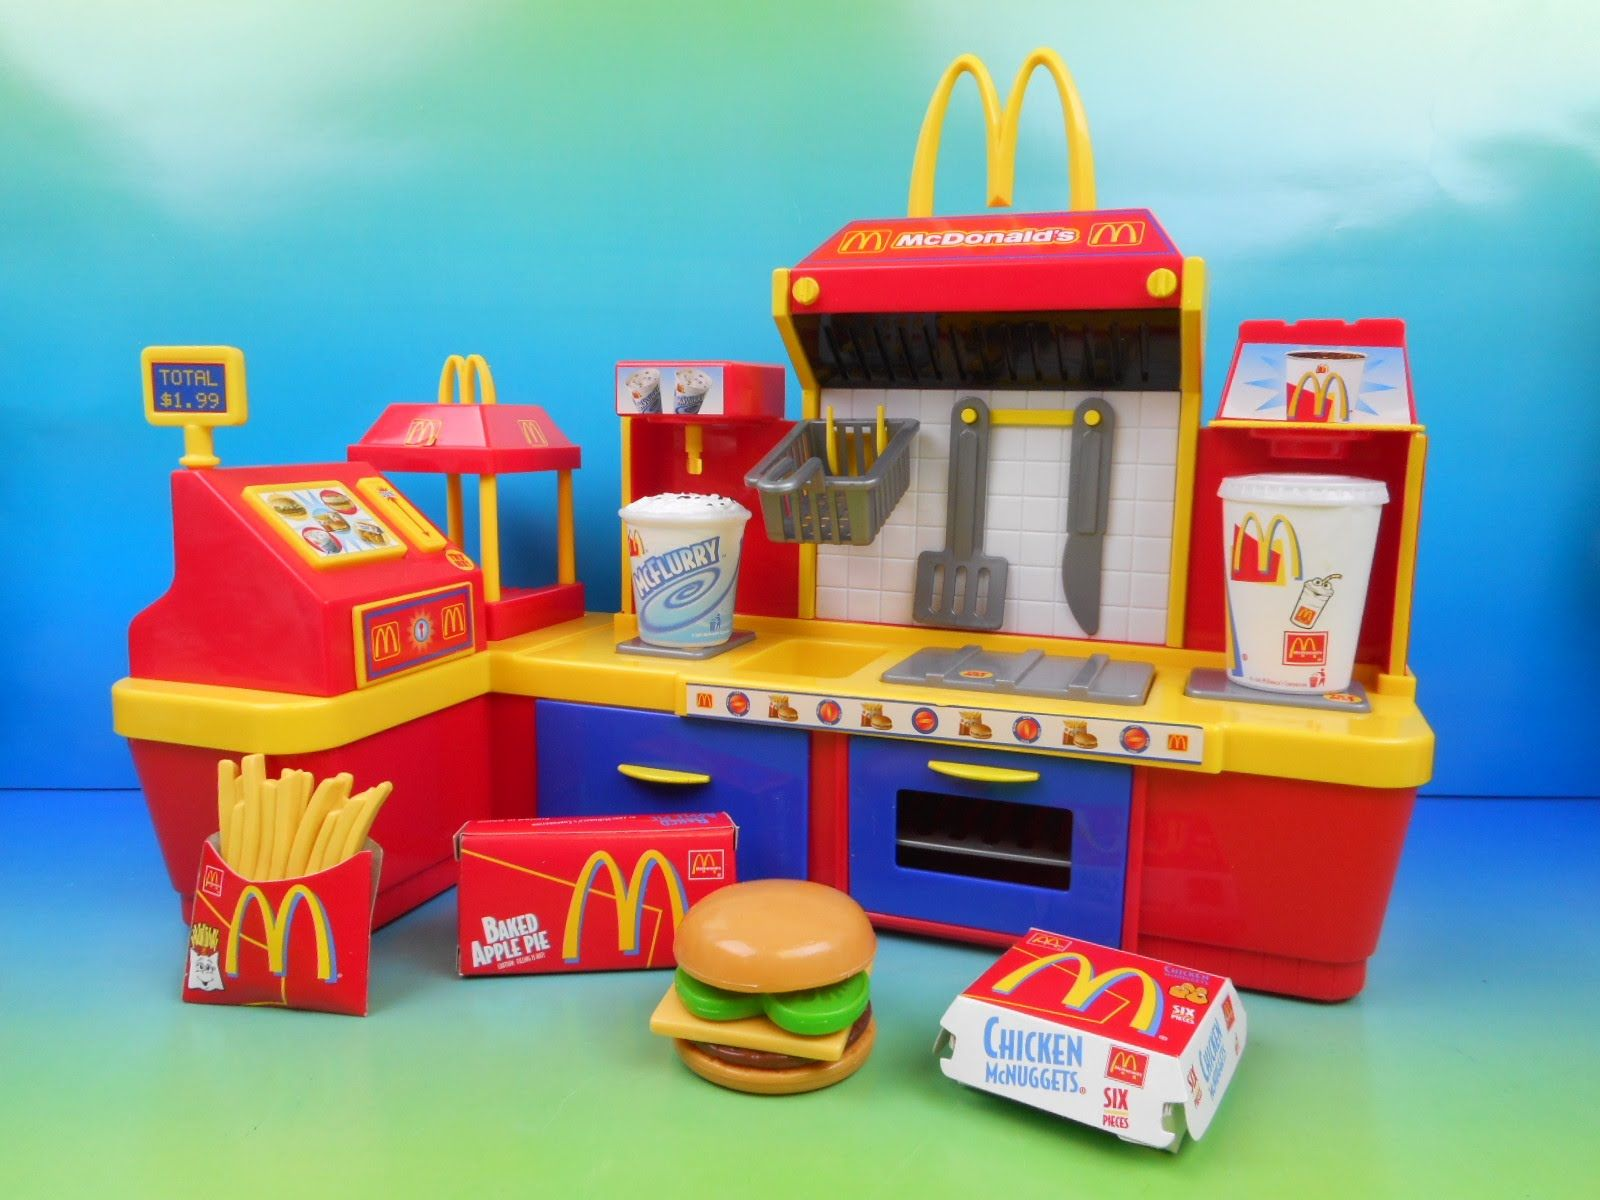 Mcdonald S Electronic Fast Food Center 18 Piece Kid S Play Set Fastfoodtoyreviews Kids Play Kitchen Accessories Kids Play Kitchen Kids Play Set